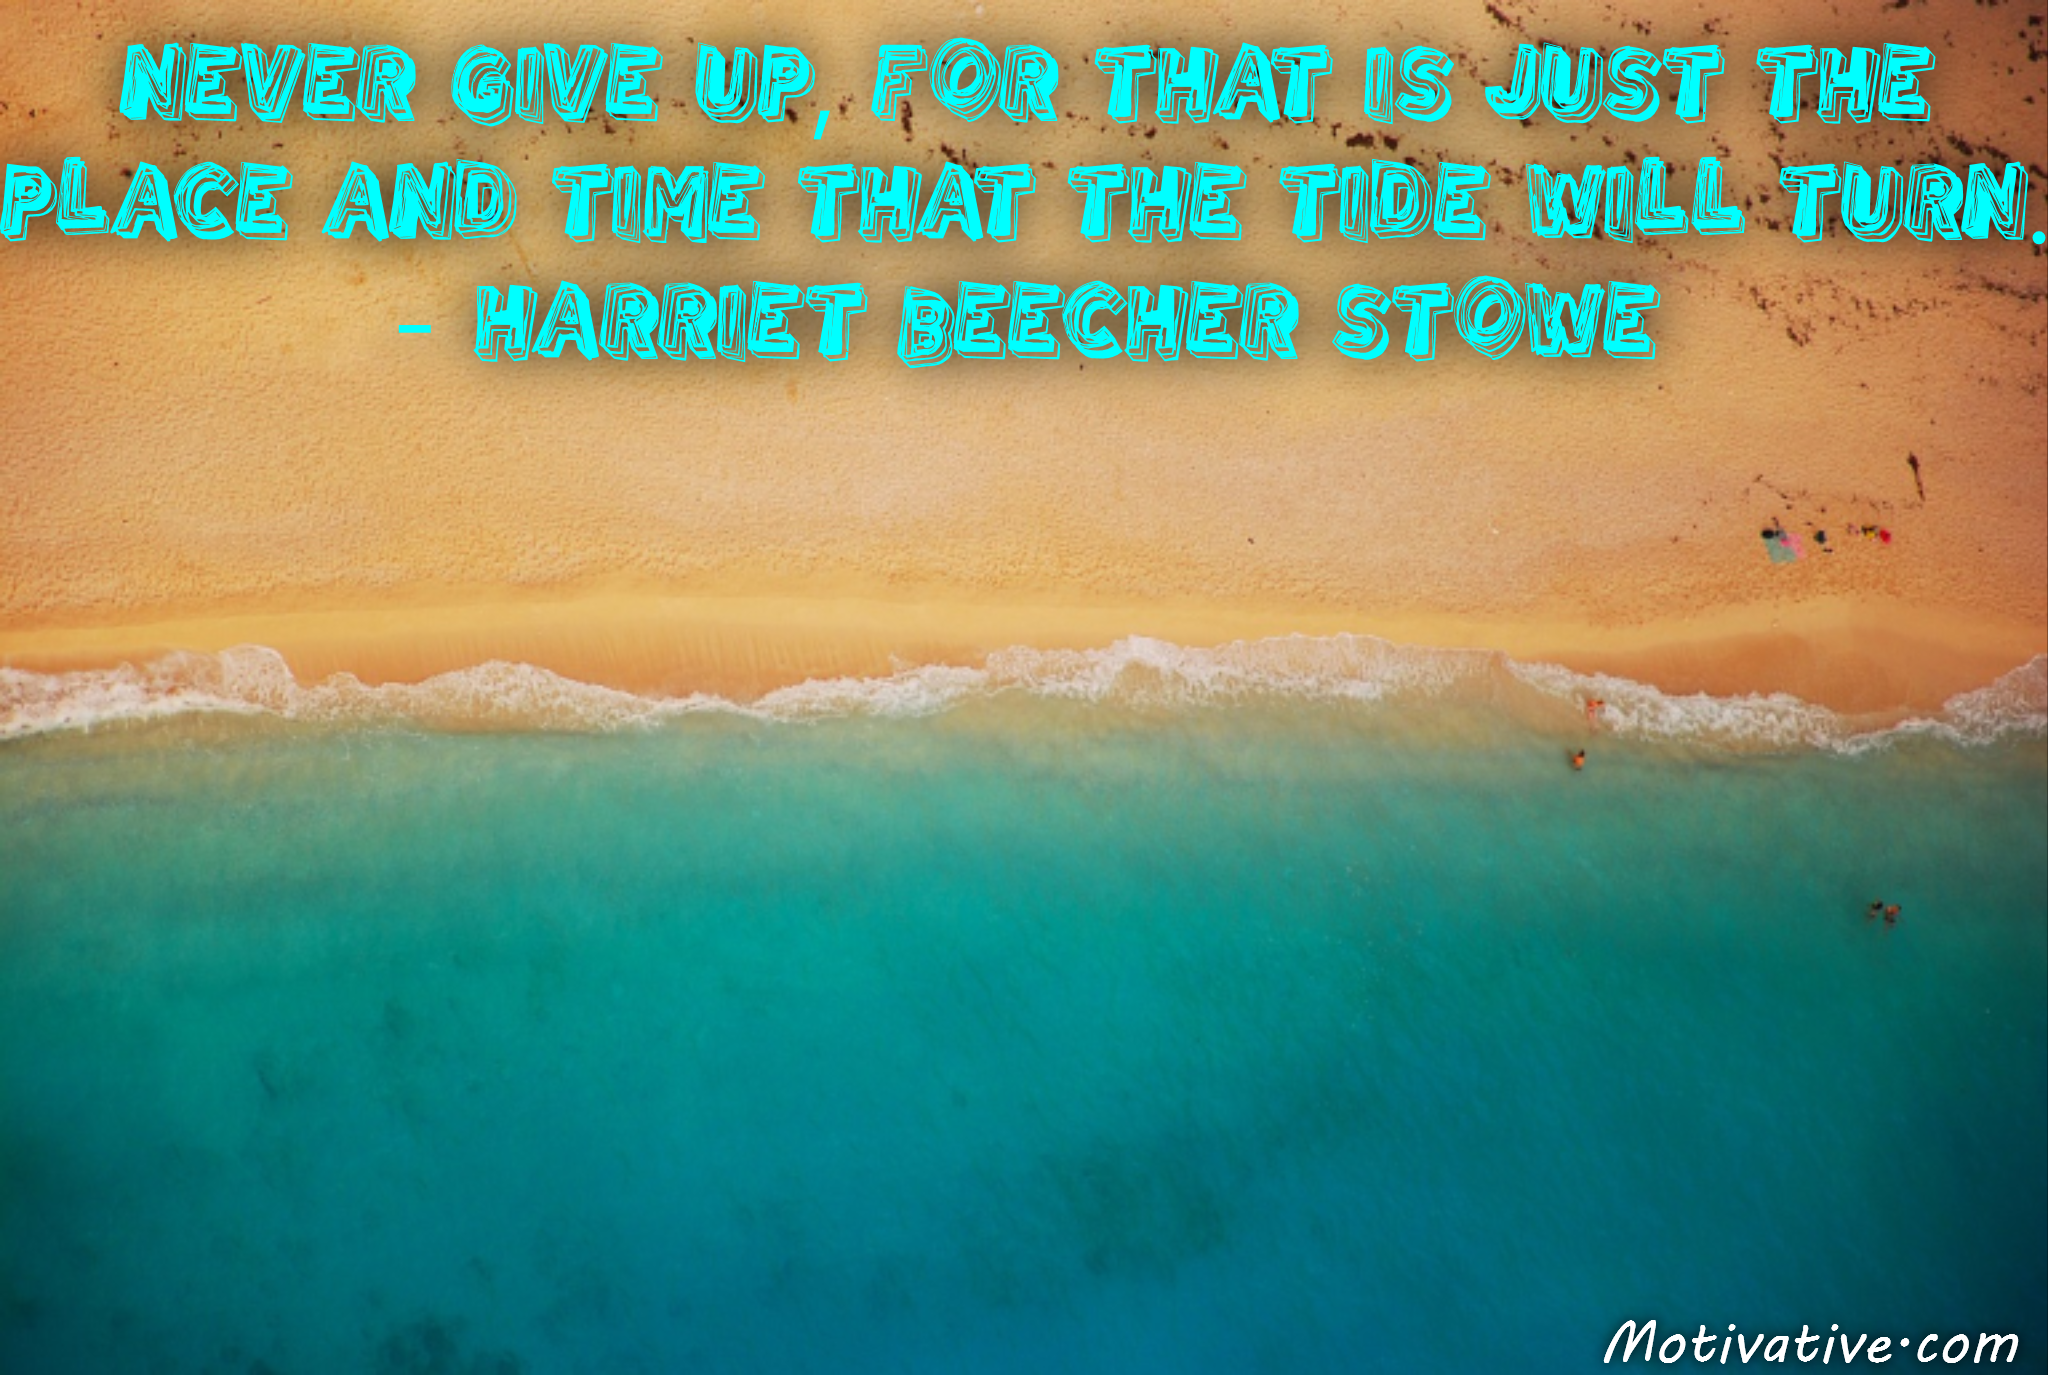 Never give up, for that is just the place and time that the tide will turn. – Harriet Beecher Stowe